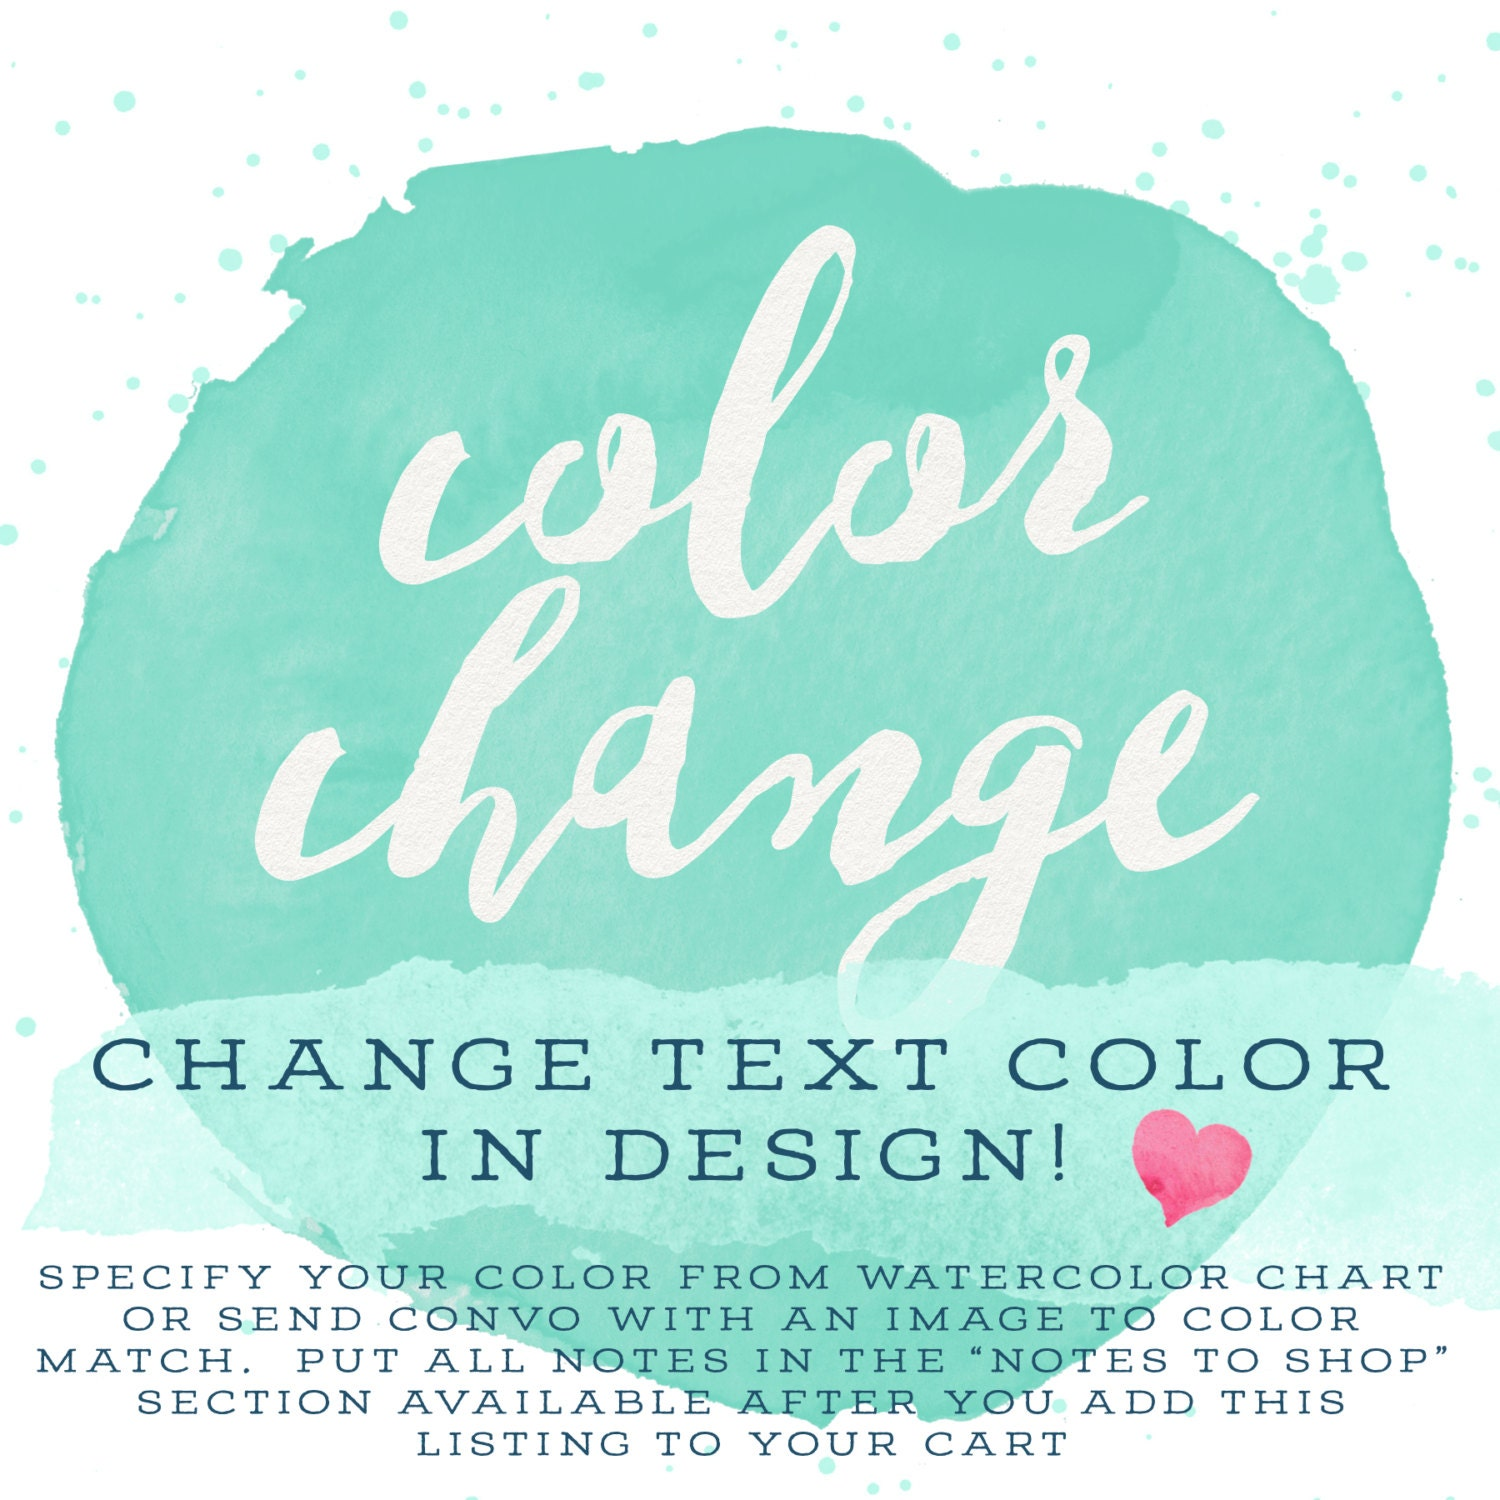 how to change text colour in paint.net